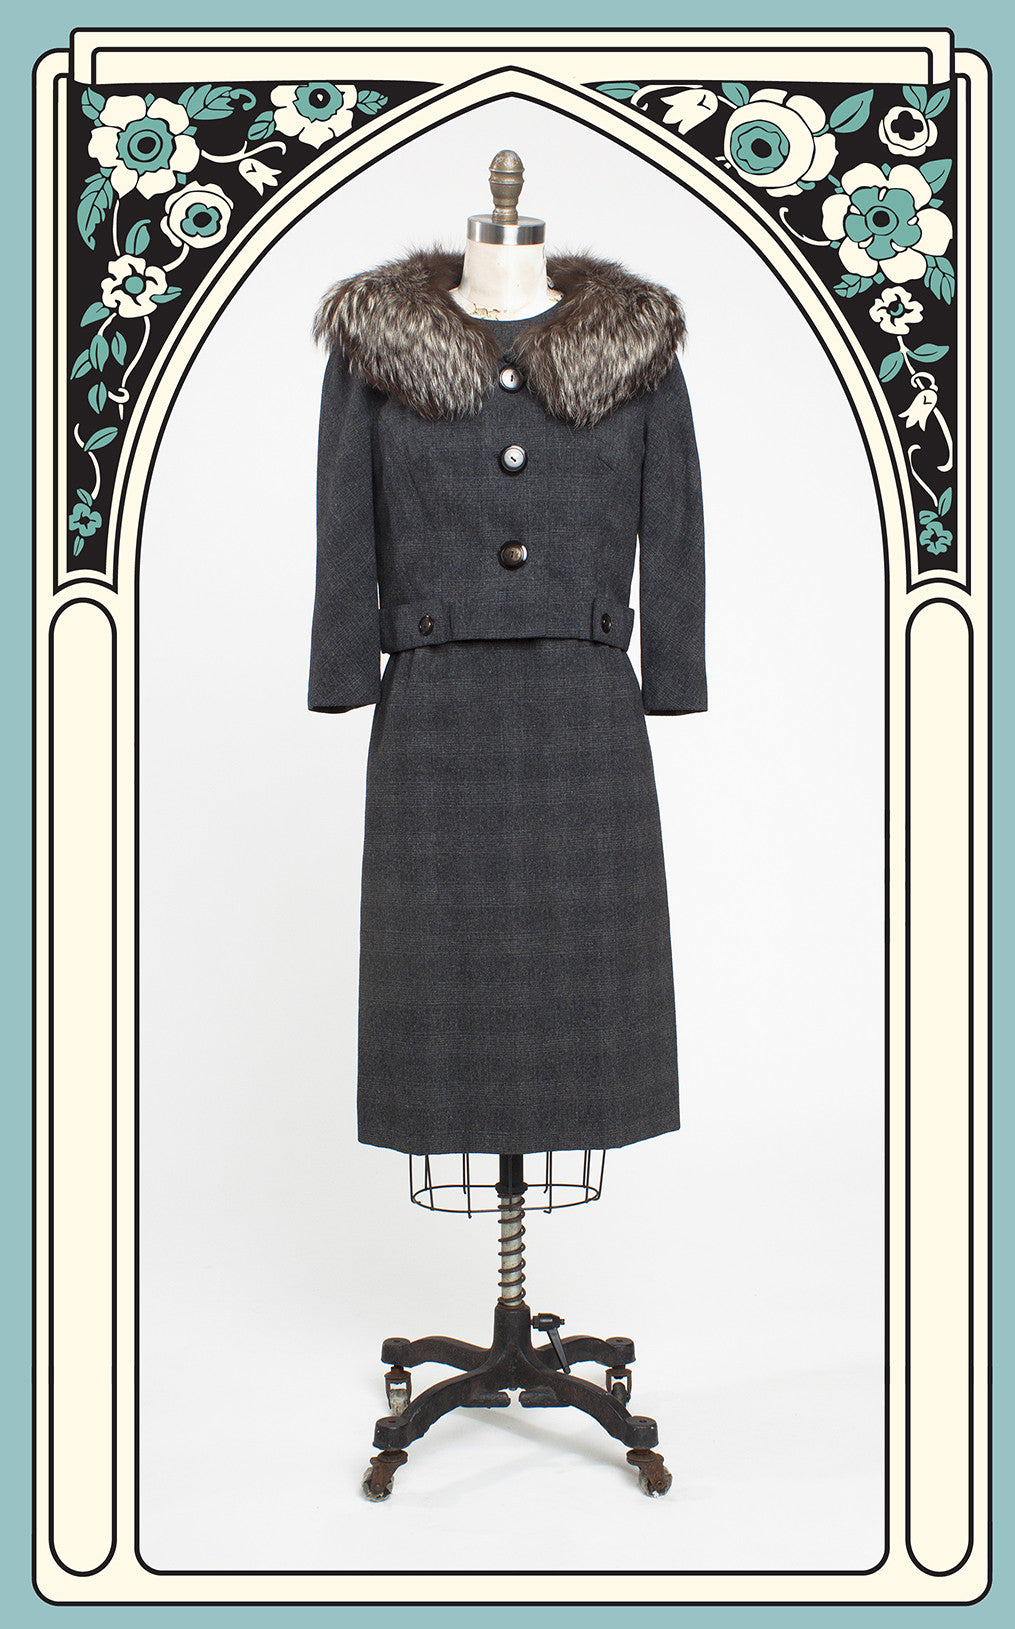 1960s Abe Schrader Glen Plaid Wool 2-Piece Suit Dress with Fox Fur Collar